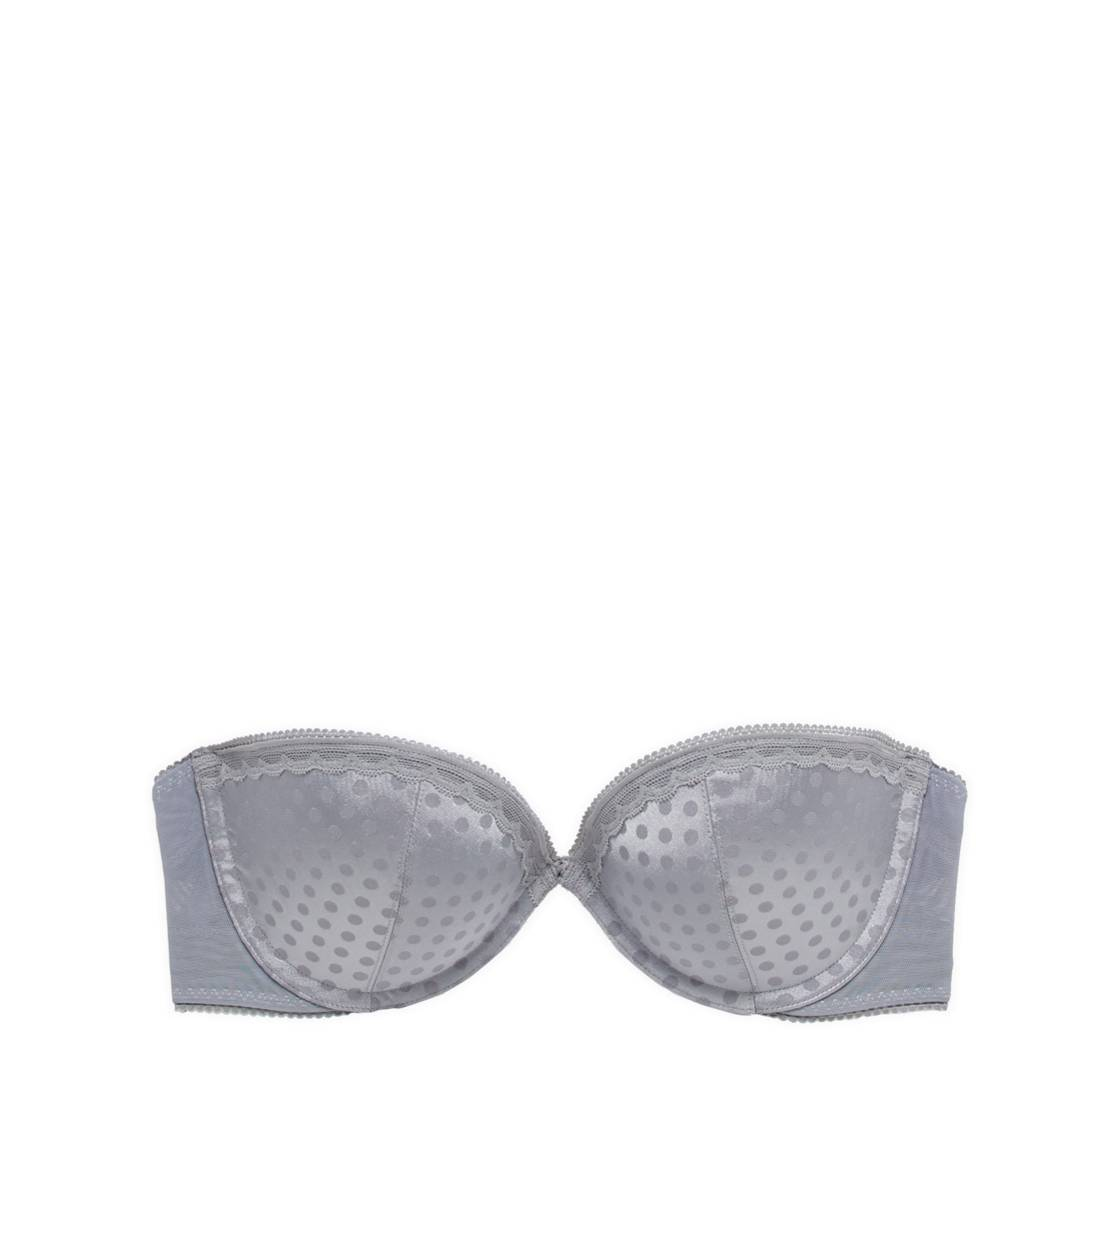 Slab Grey Abigail Multi-Way Pushup Bra